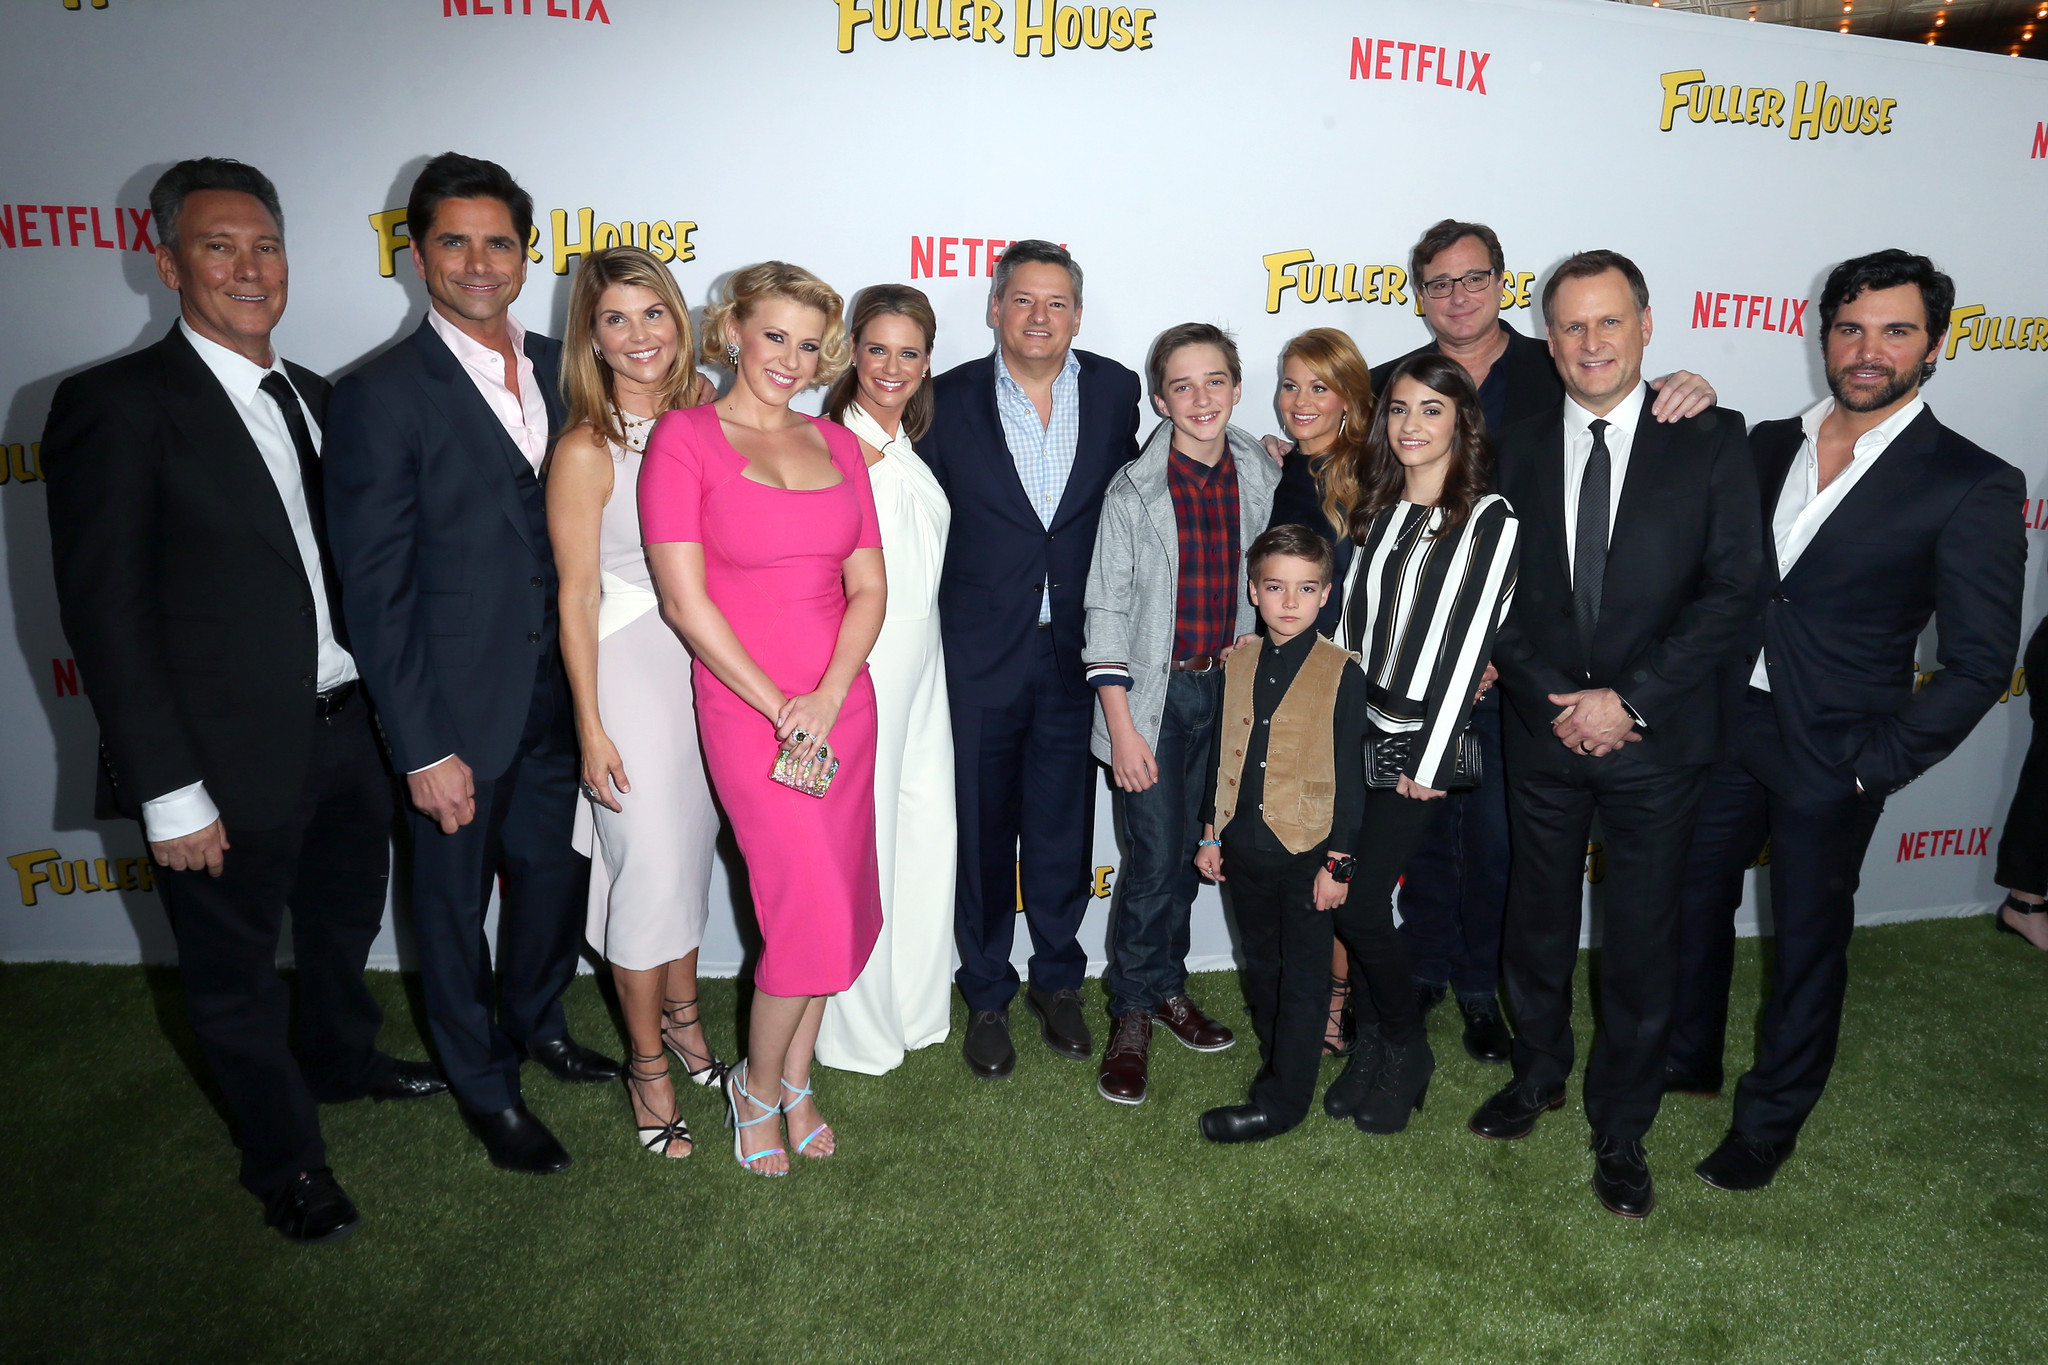 'Fuller House' cast talks goofy outfits, chills on set and the return of Mr. Woodchuck